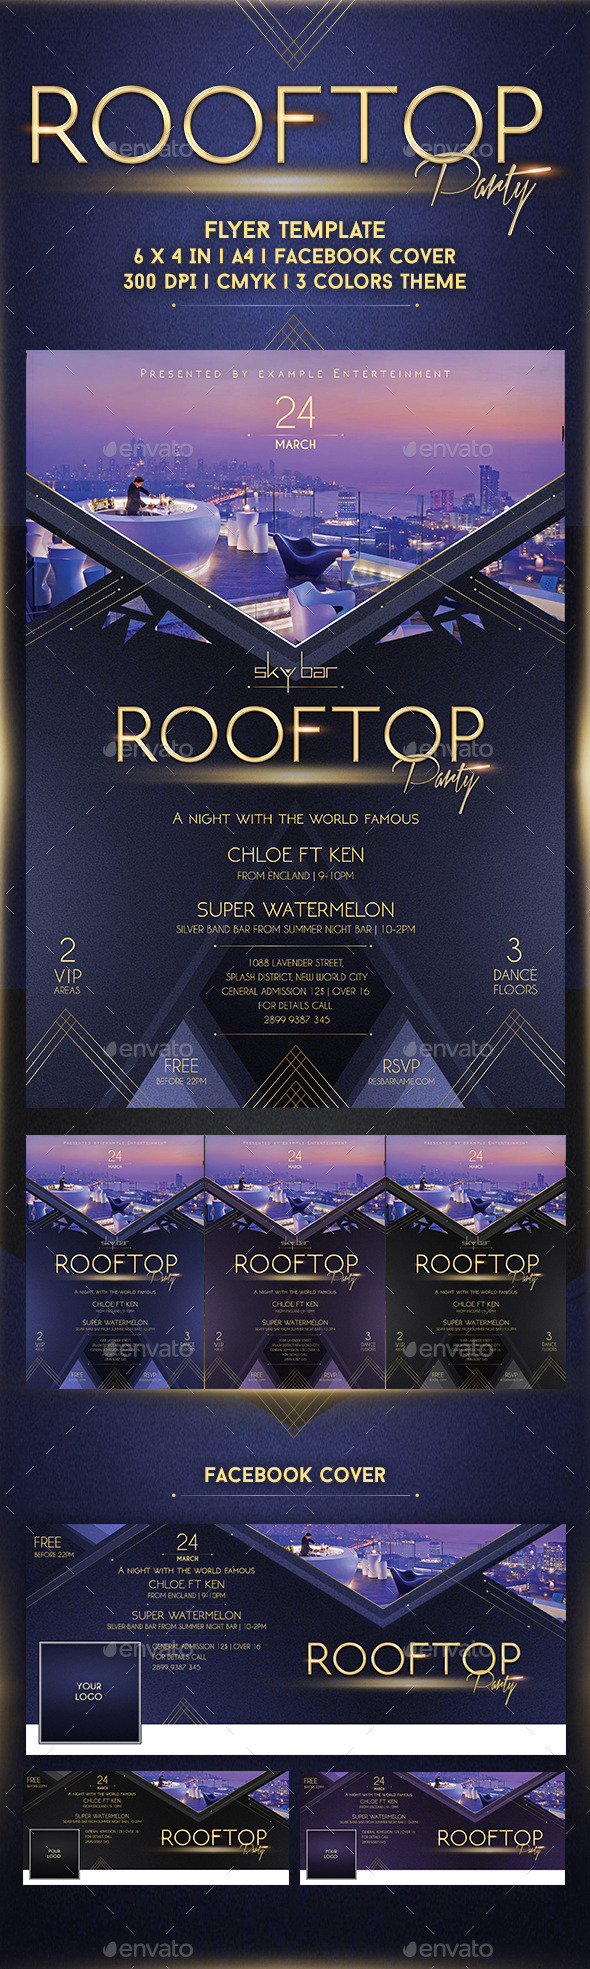 Rooftop Party Flyer Template - Clubs & Parties Events